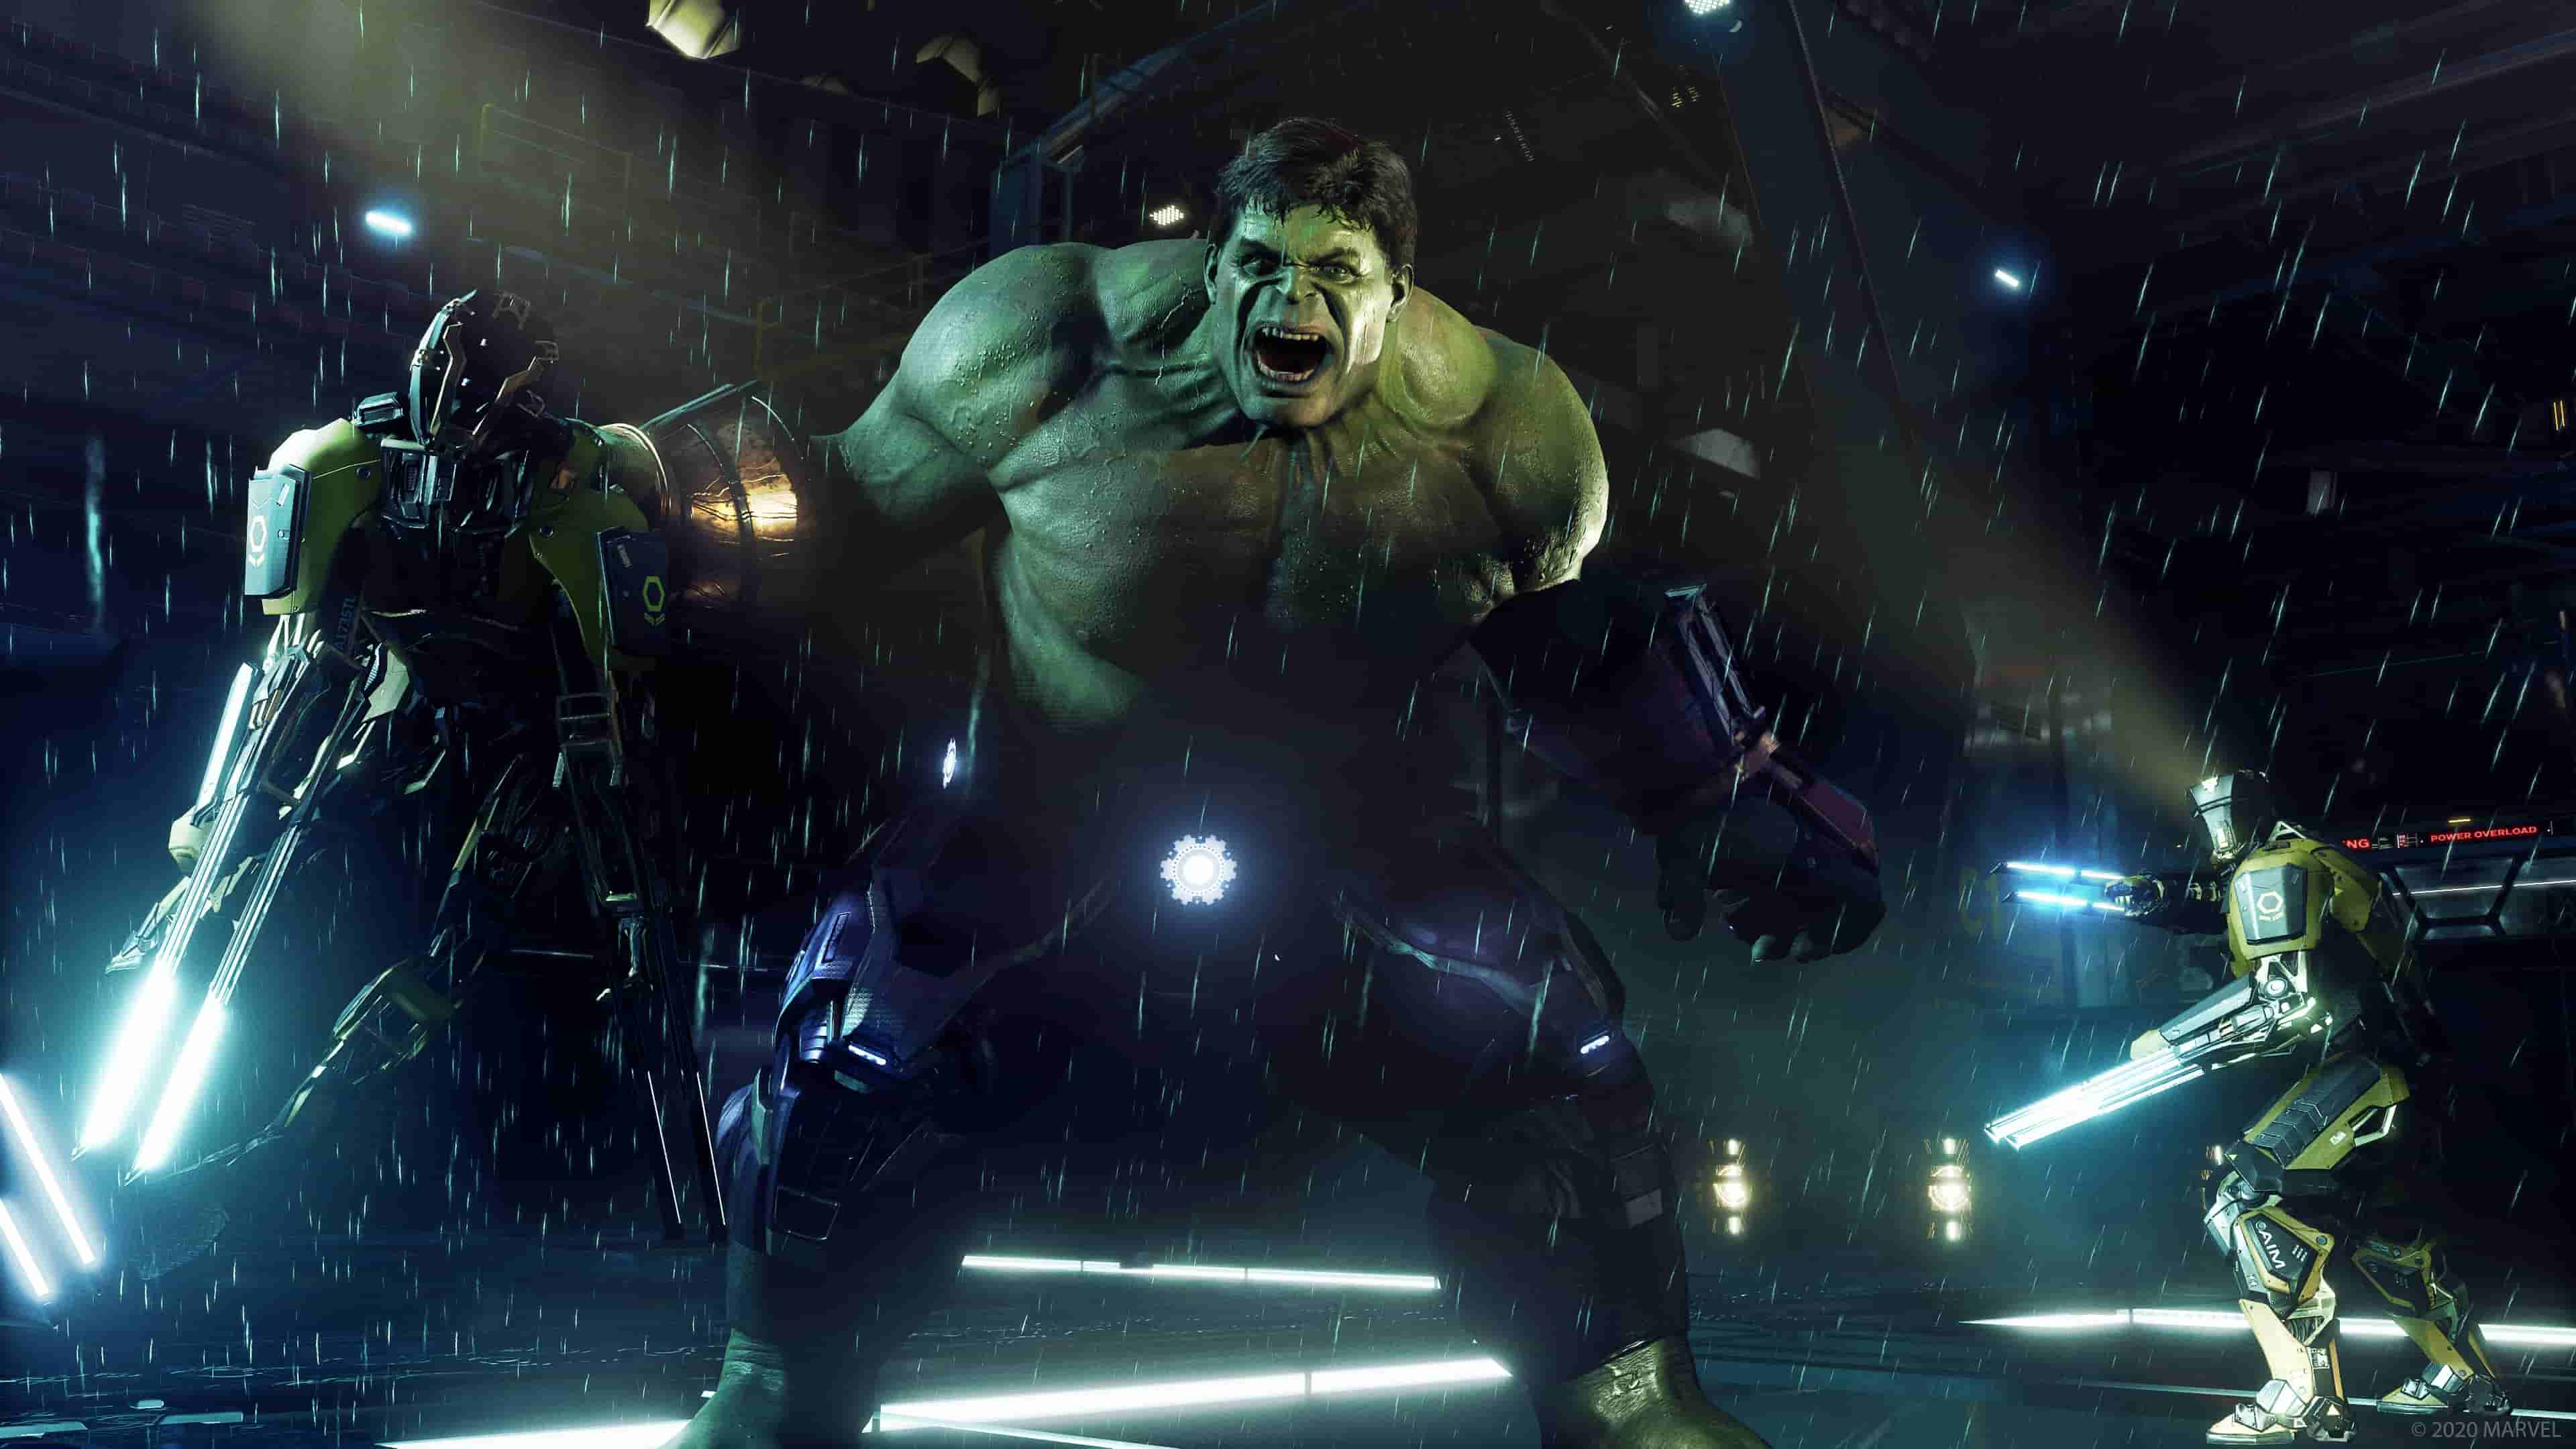 Marvel's Avengers PS5 and Xbox Series X|S versions delayed into 2021